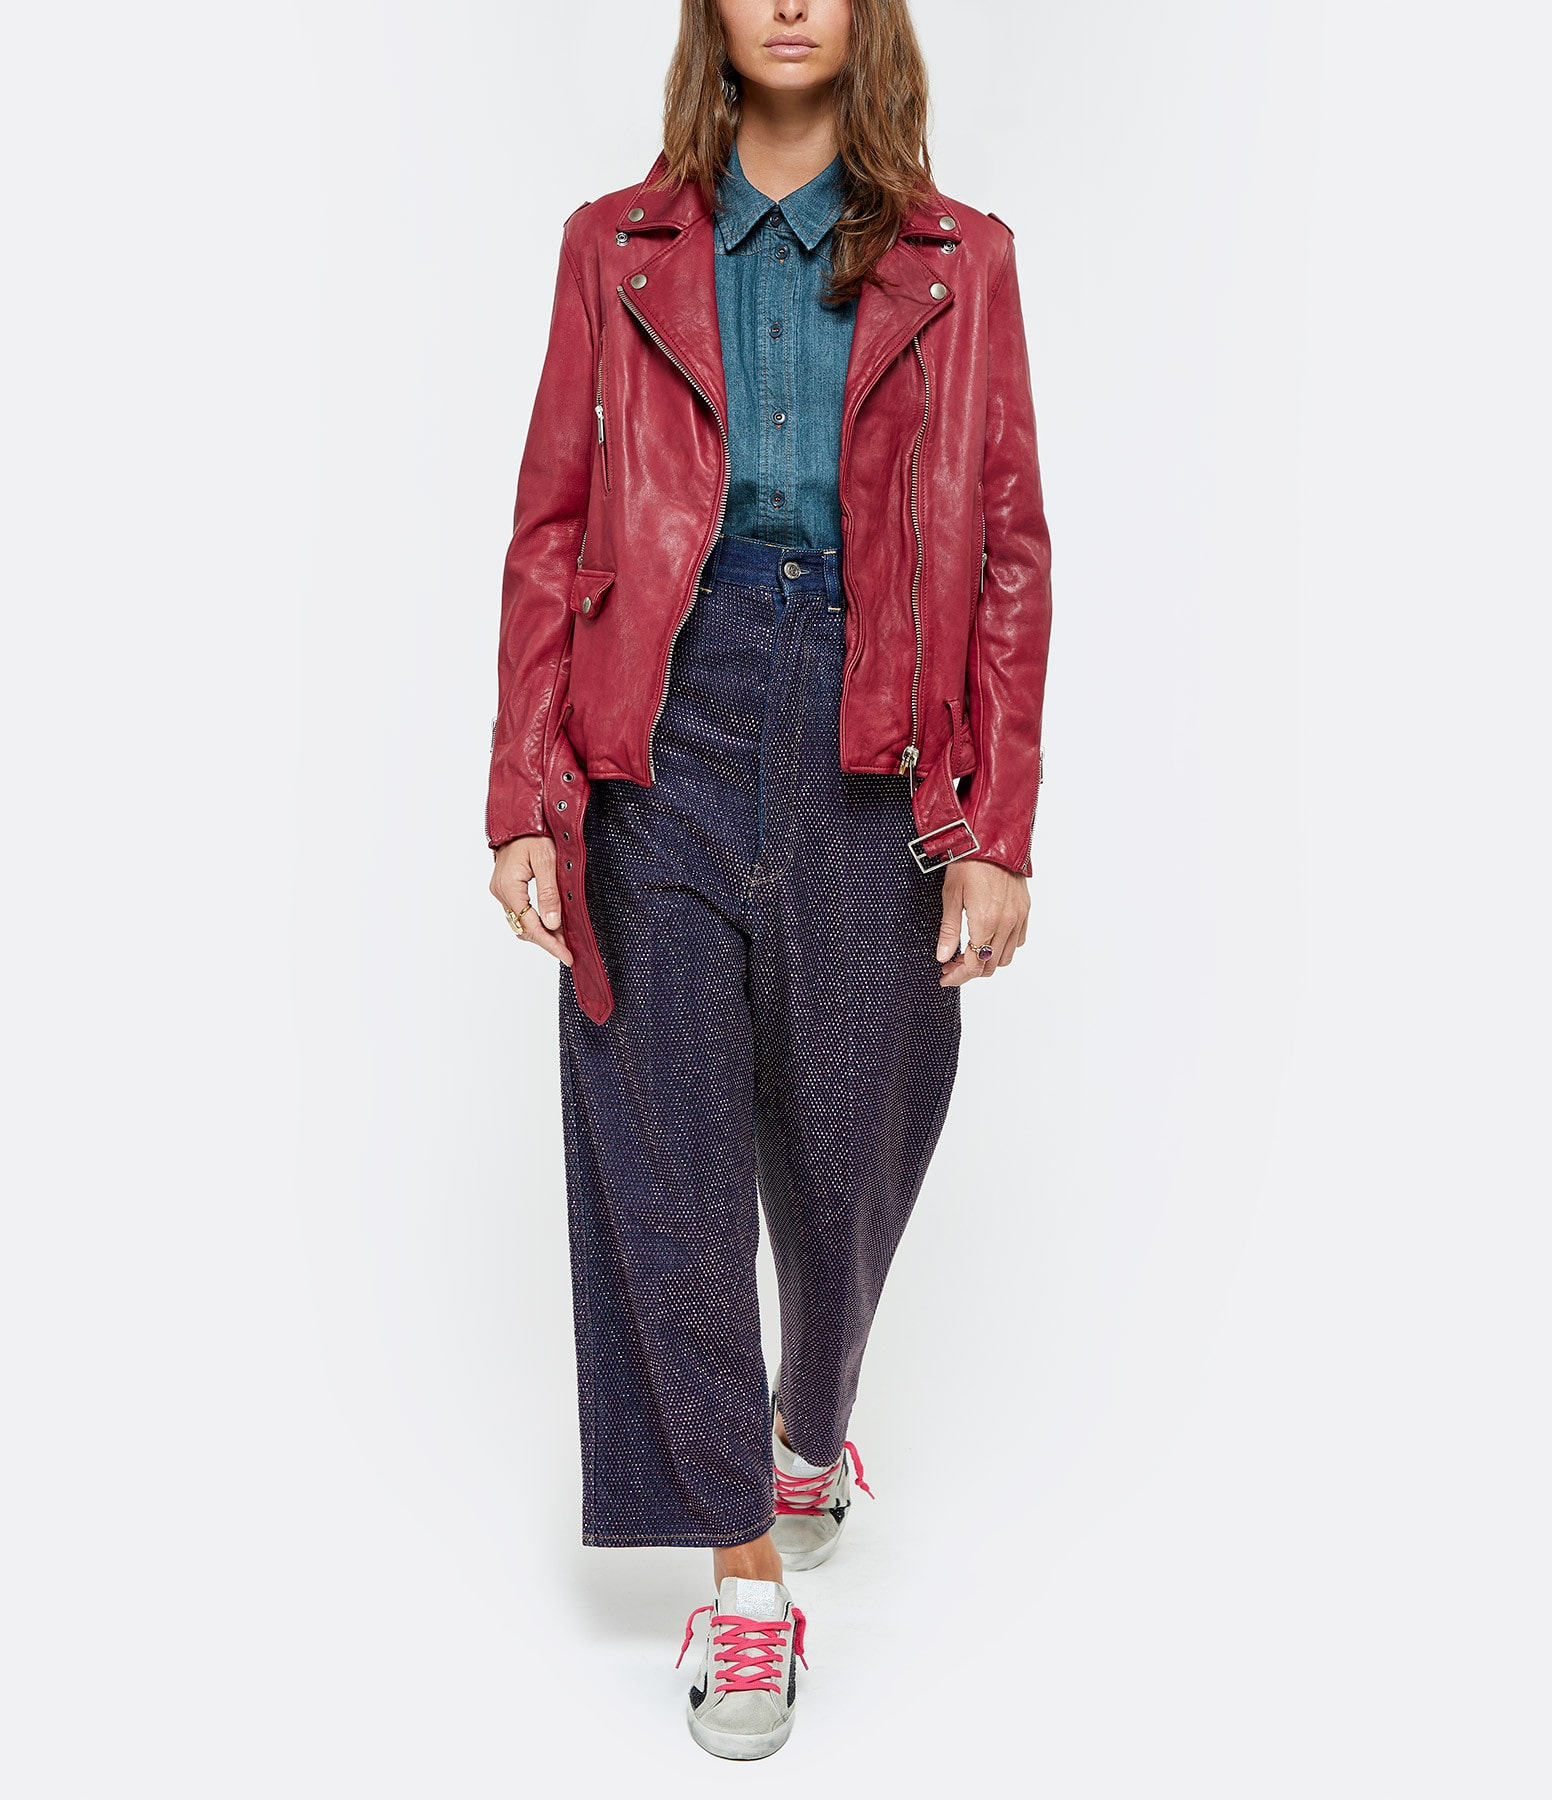 GOLDEN GOOSE - Pantalon Breezy Denim Coton Bleu Délavé